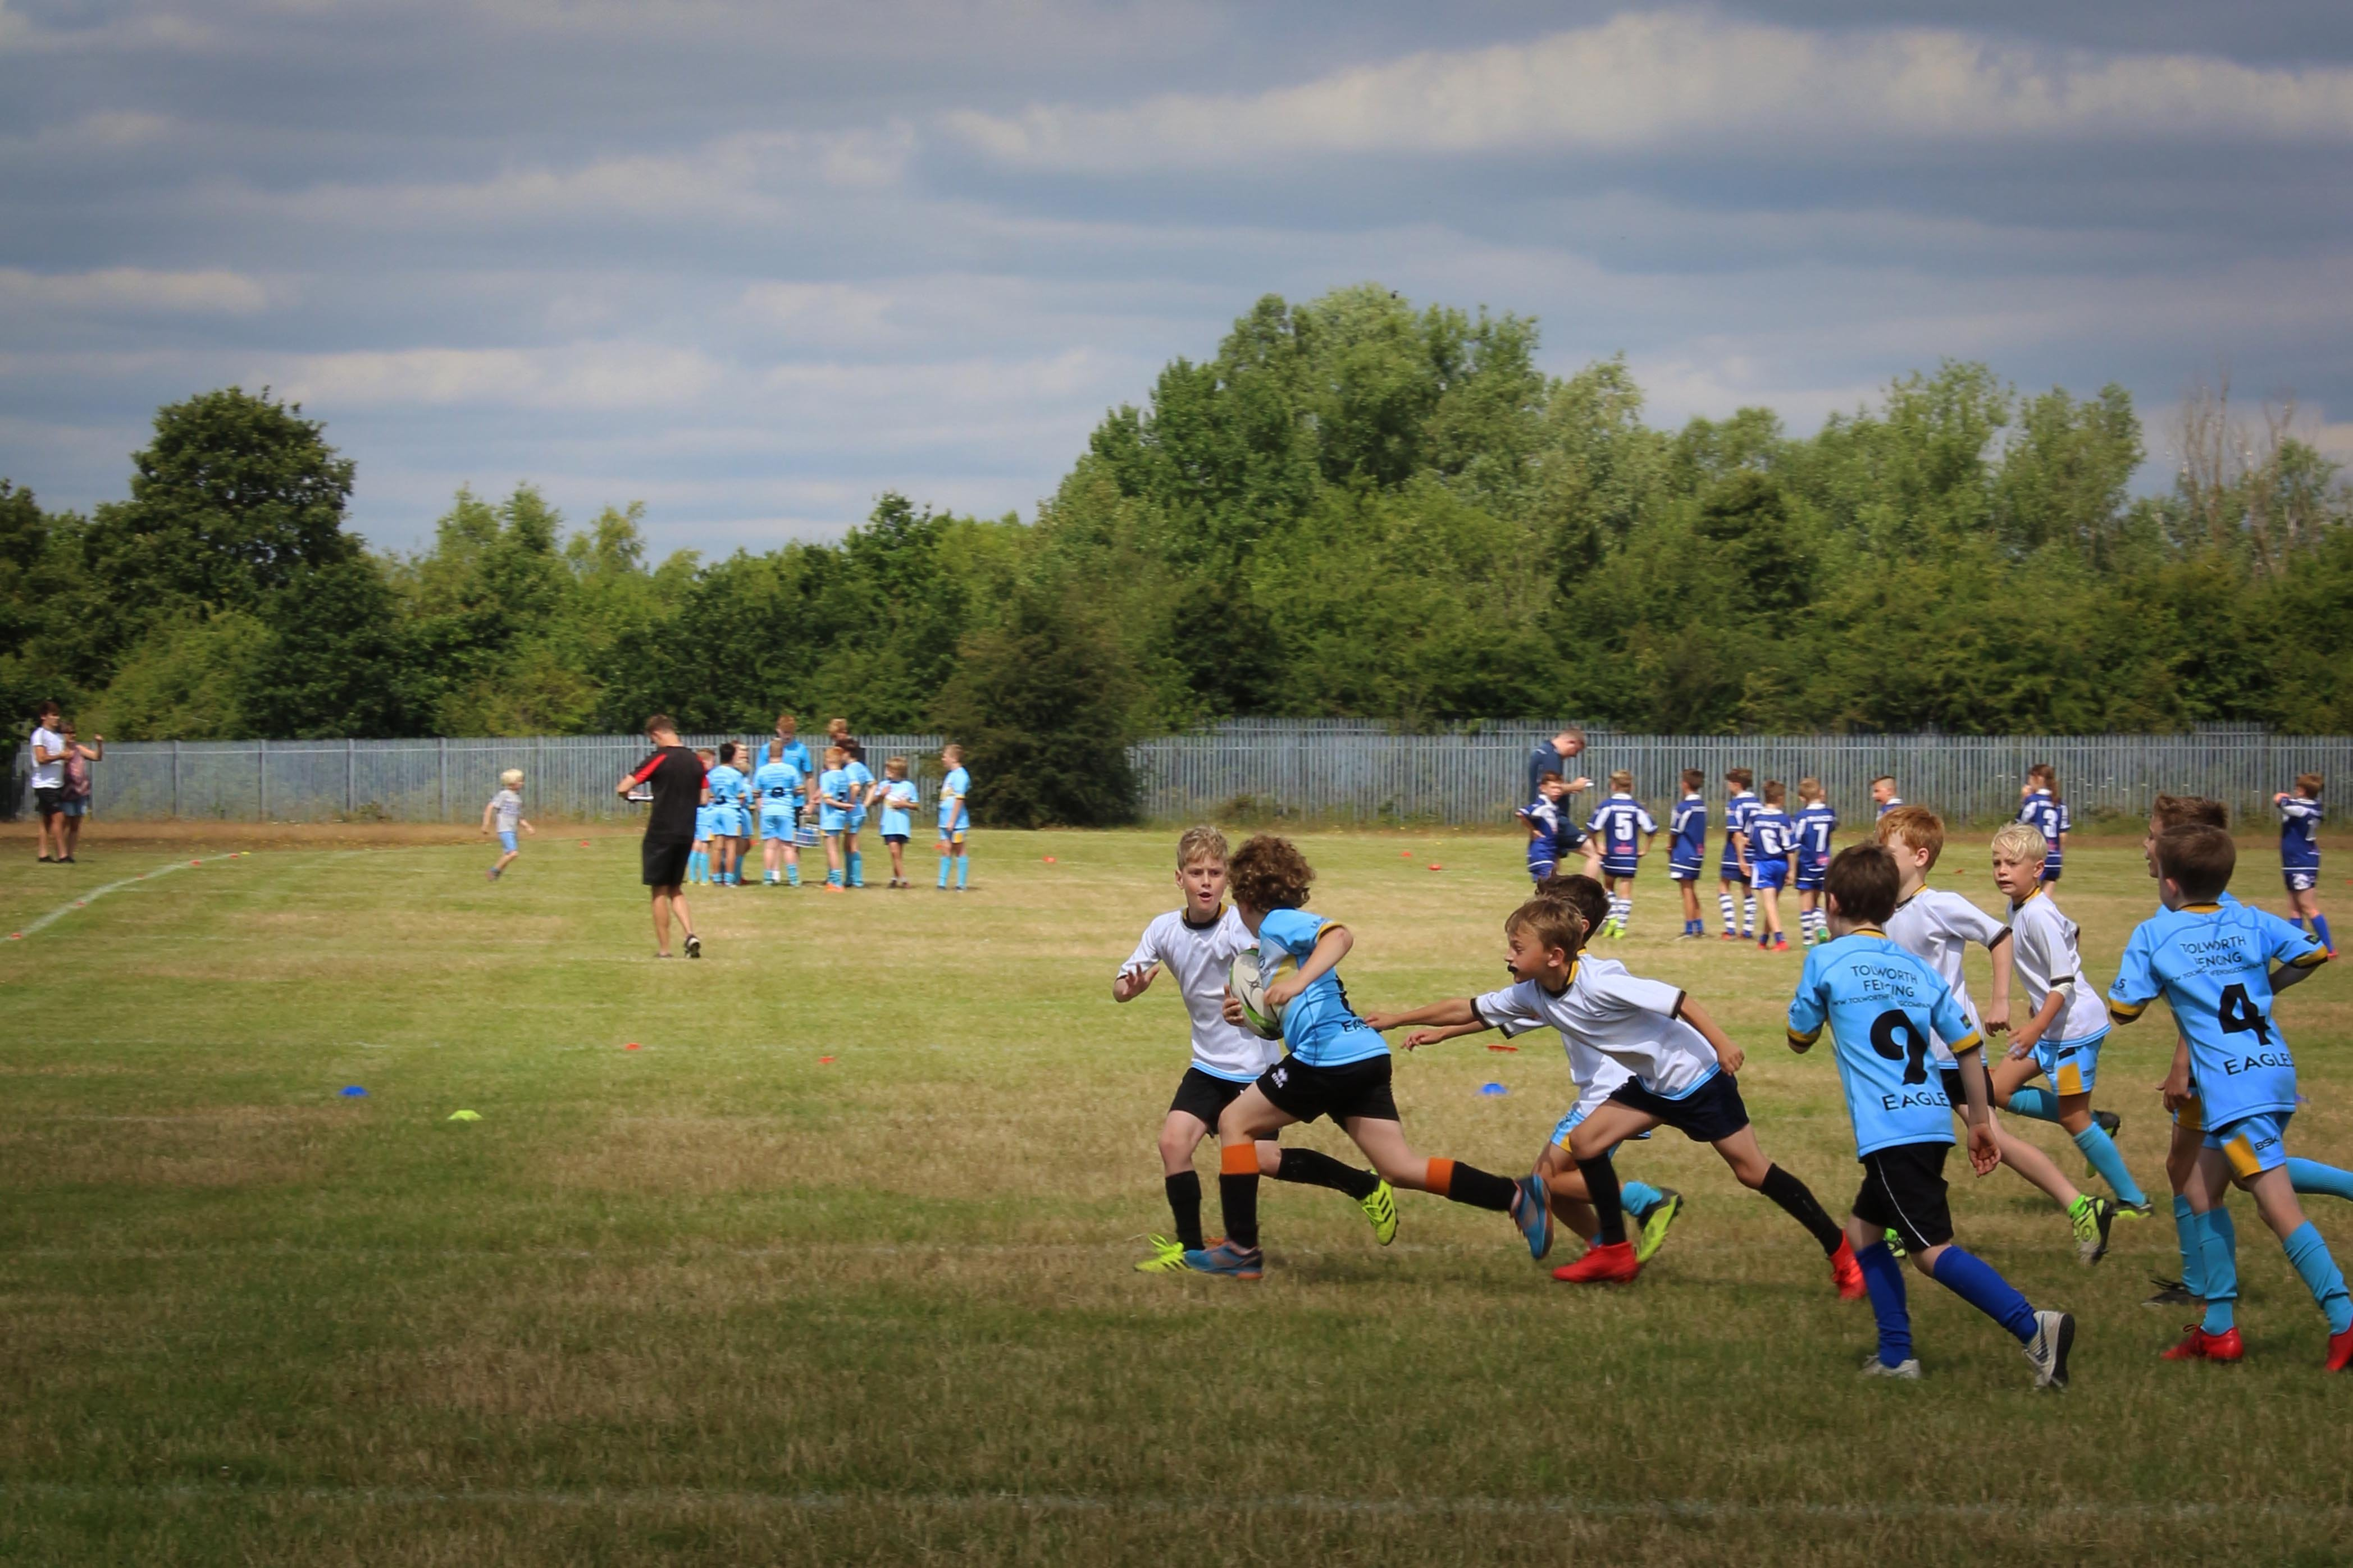 U9s Elmbridge vs Elmbridge 4